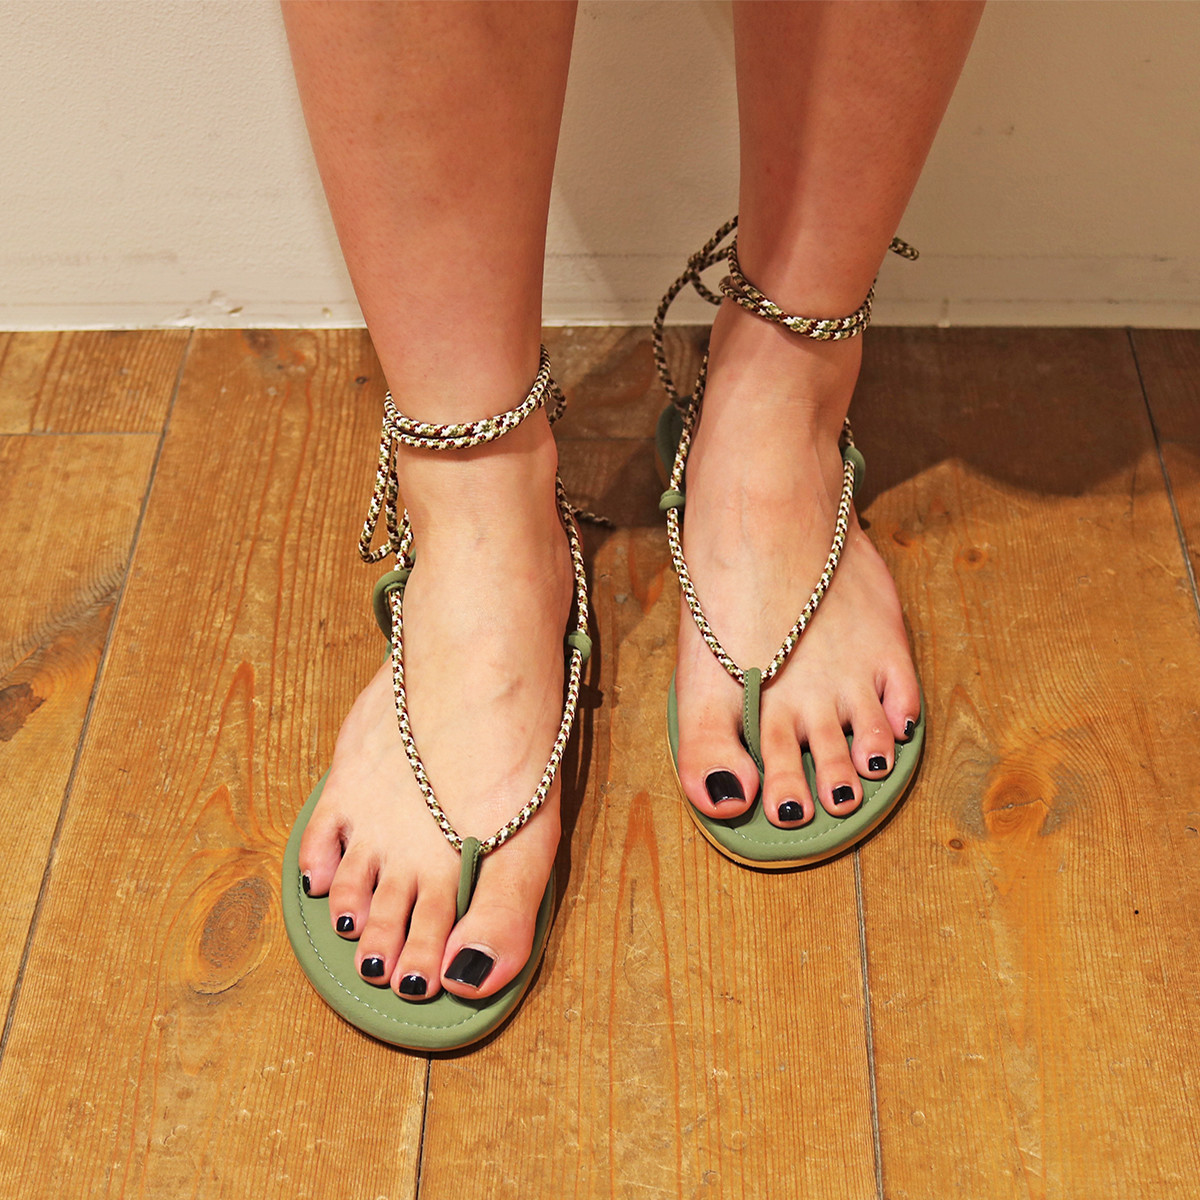 Cord Lace-up Sandals